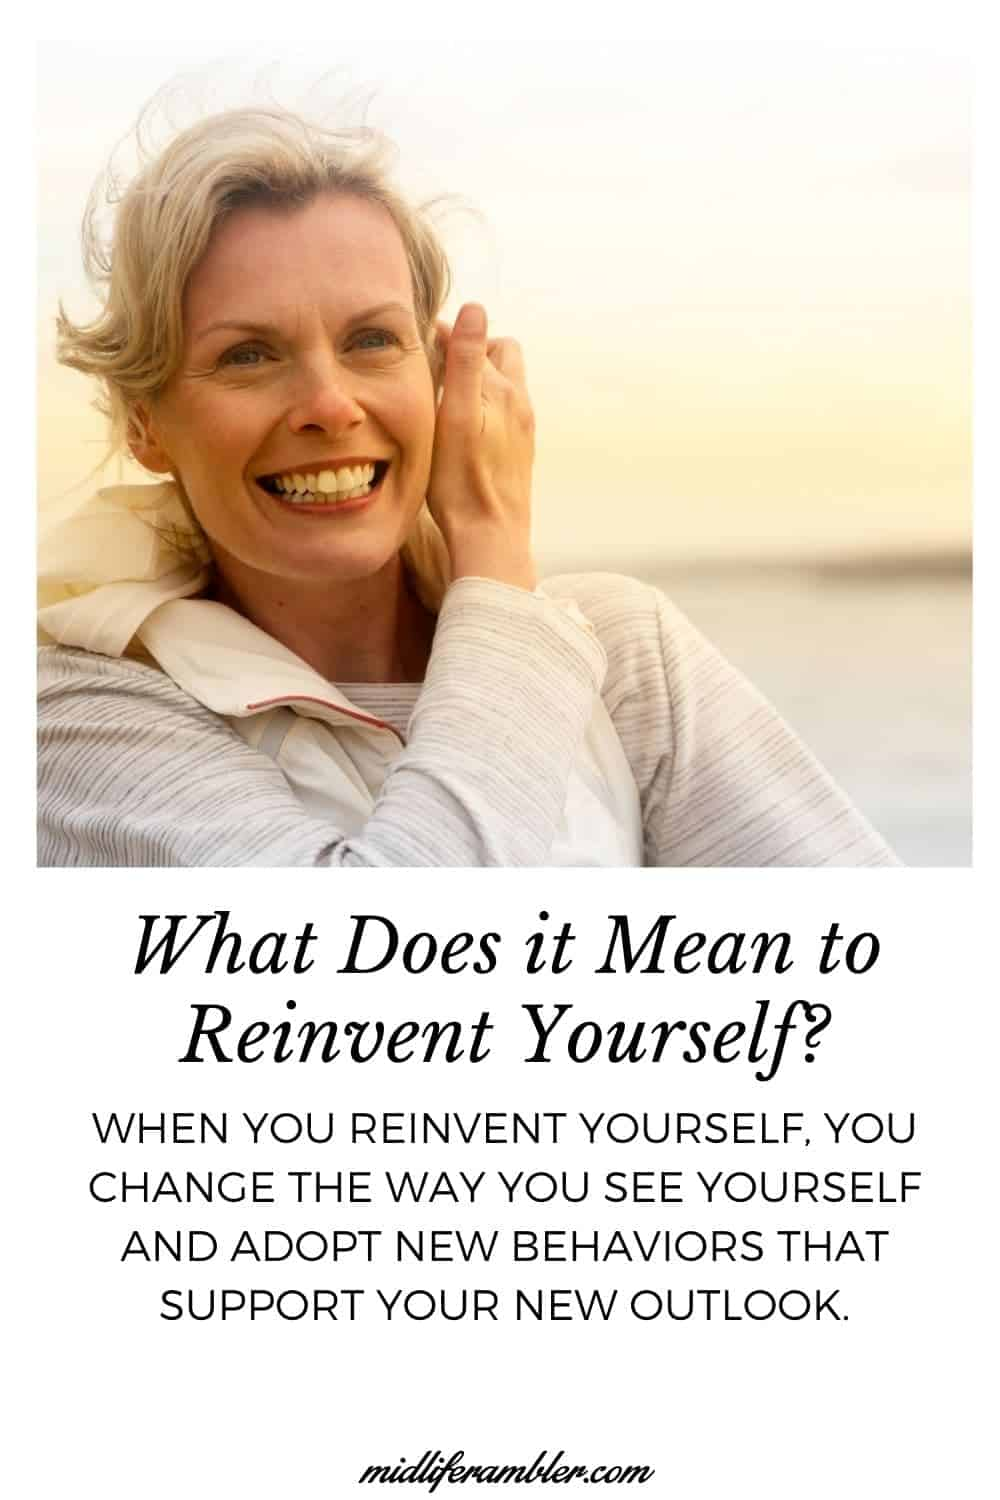 What Does it Mean to Reinvent Your Life? When you reinvent your life, you change the way you see yourself and adopt new behaviors that support your need outlook.